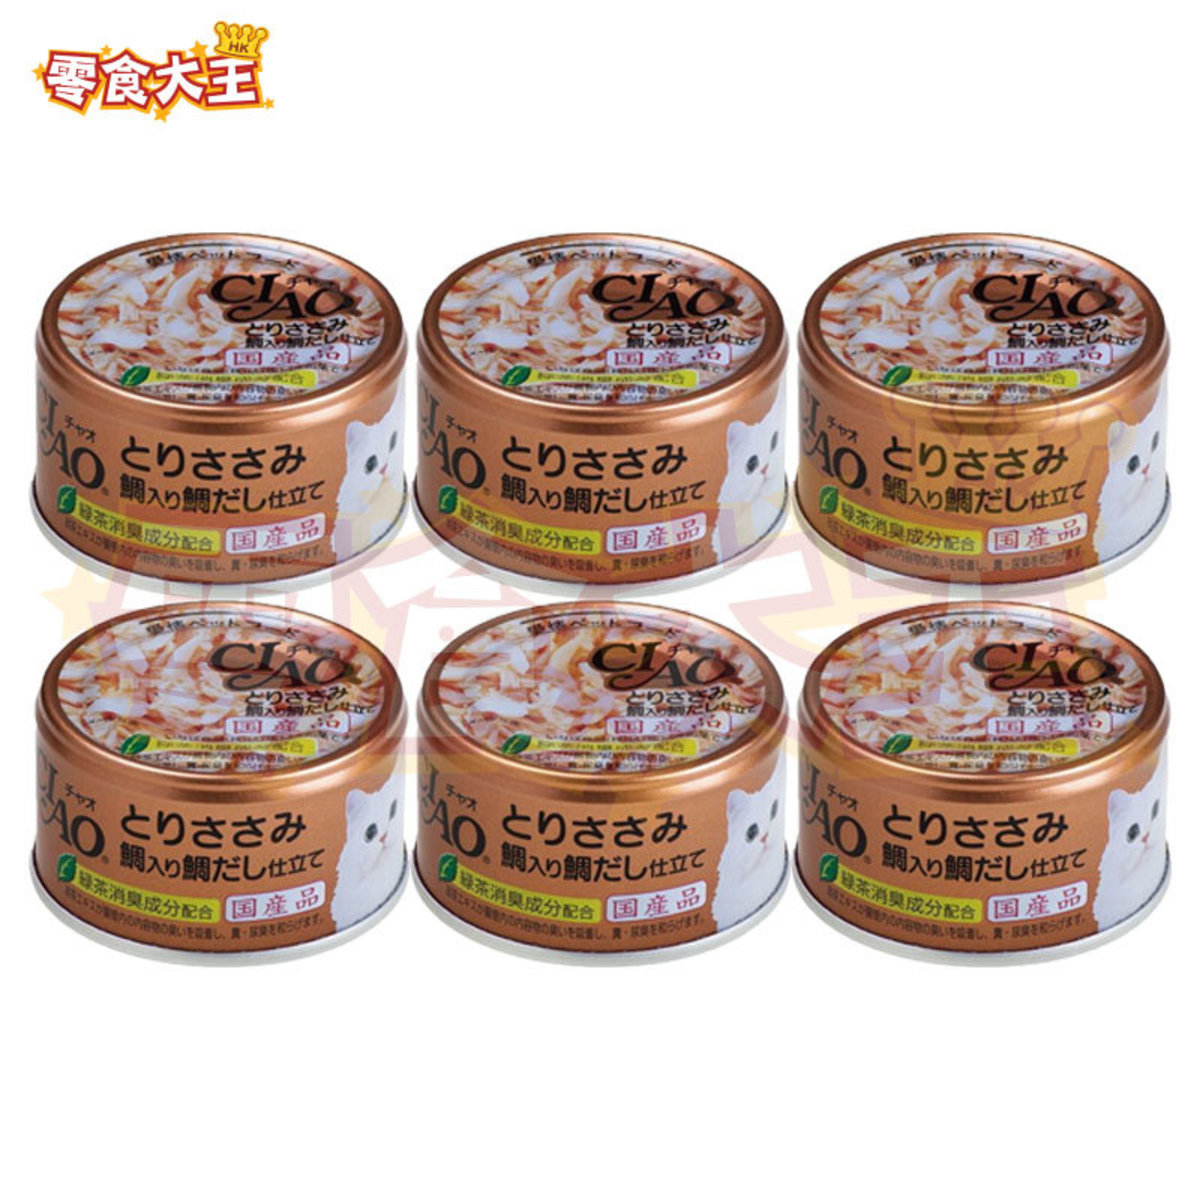 Chicken Breast with Squid Soup Cat Canned - A-88 85g x 6 cans (4901133062285_6)